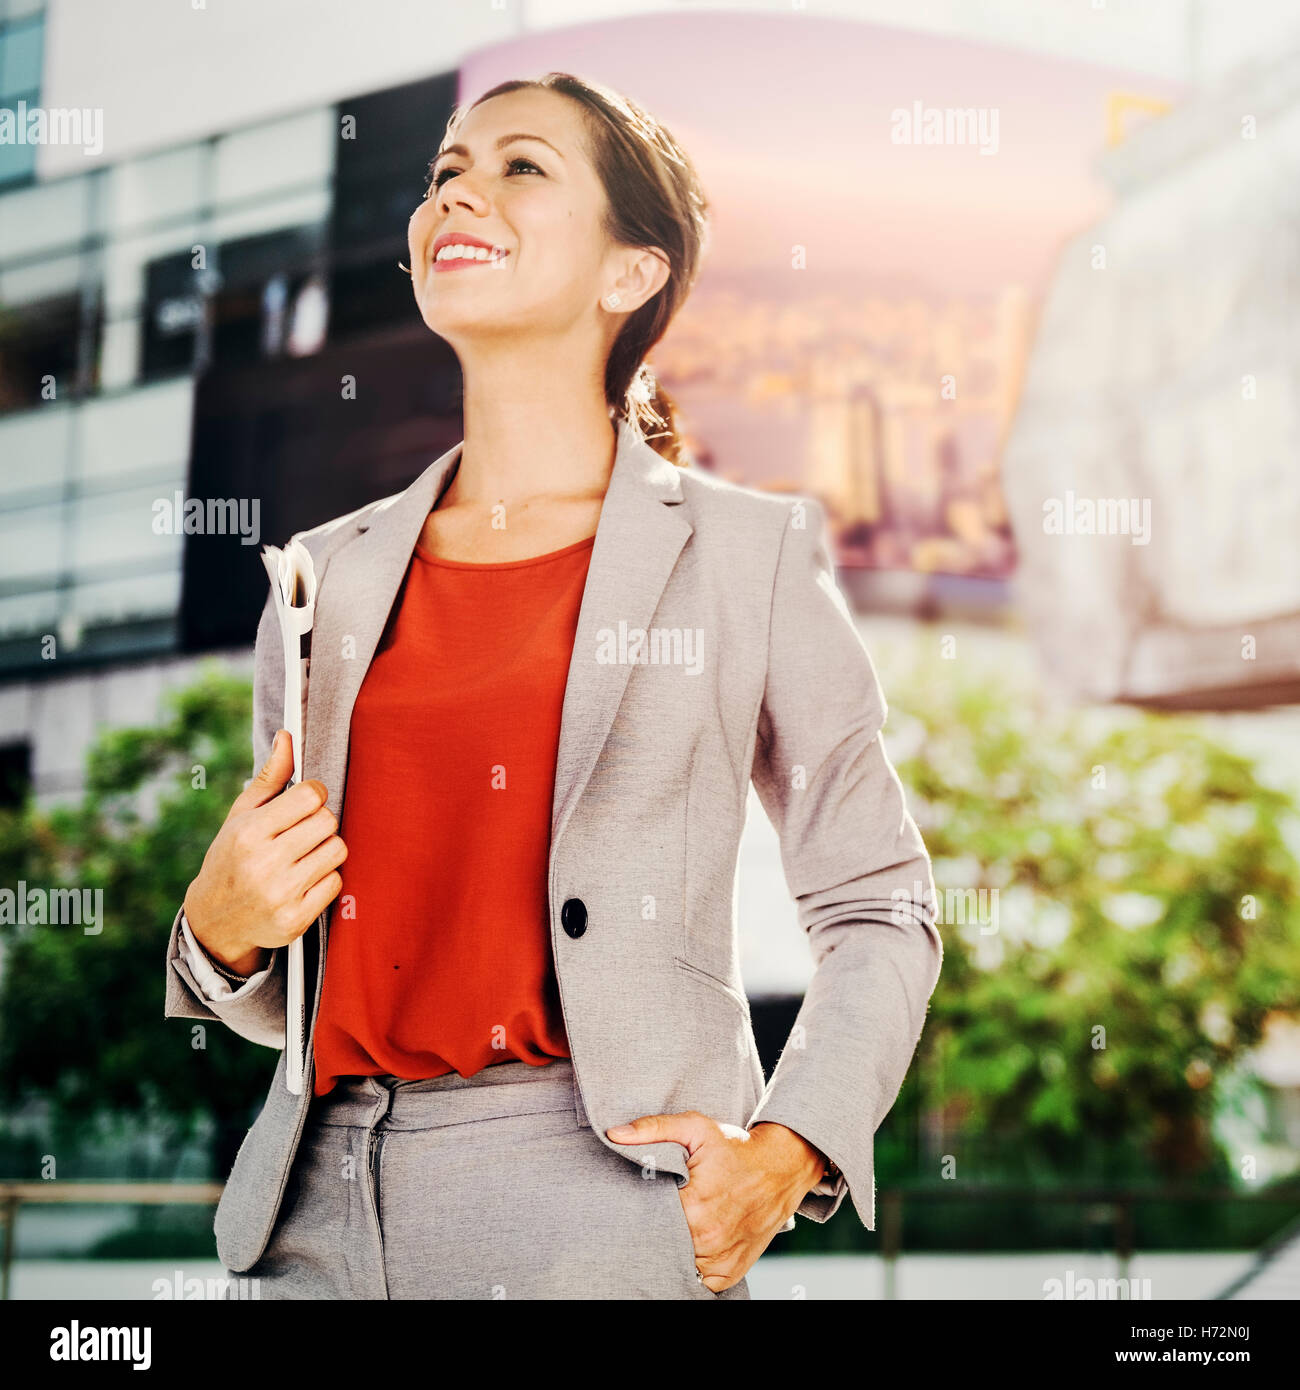 Businesswoman Vision Strategy the Way Forward Concept - Stock Image